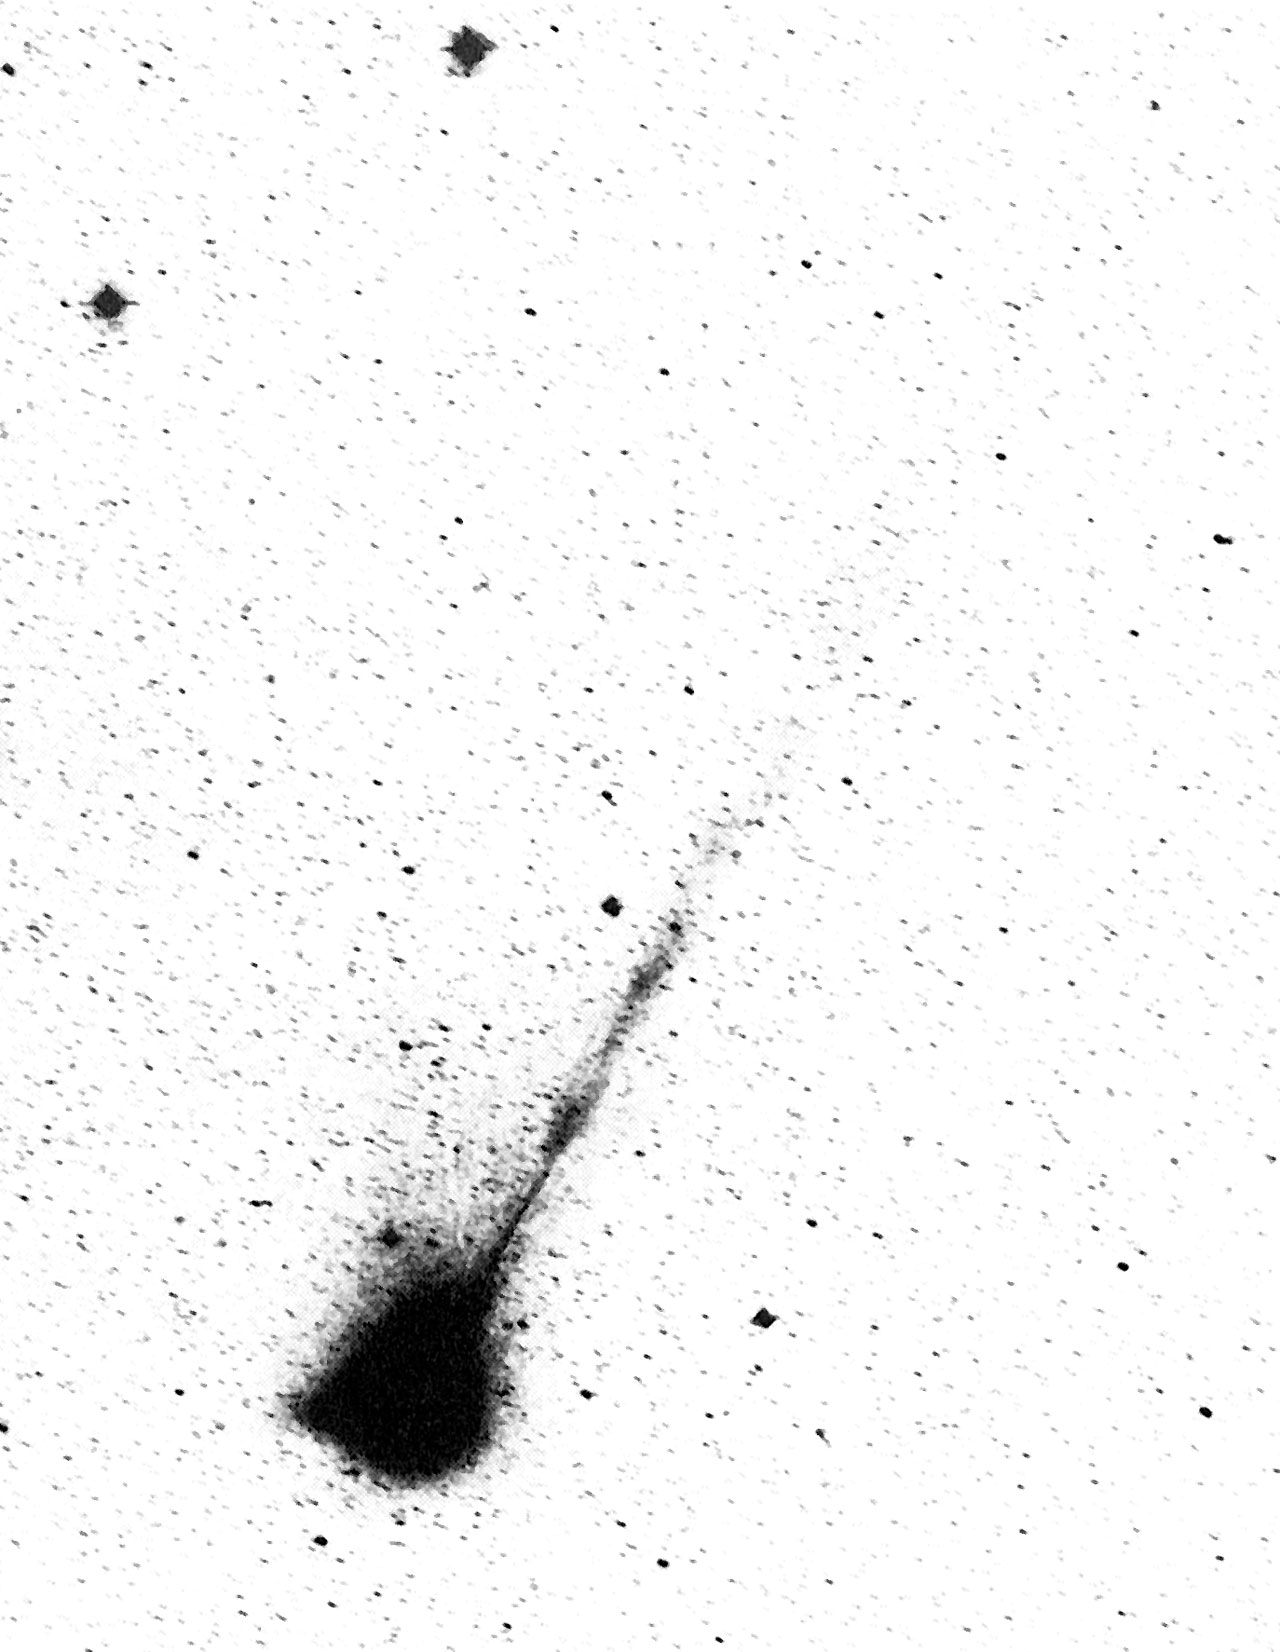 The long ion tail of Comet Wilson